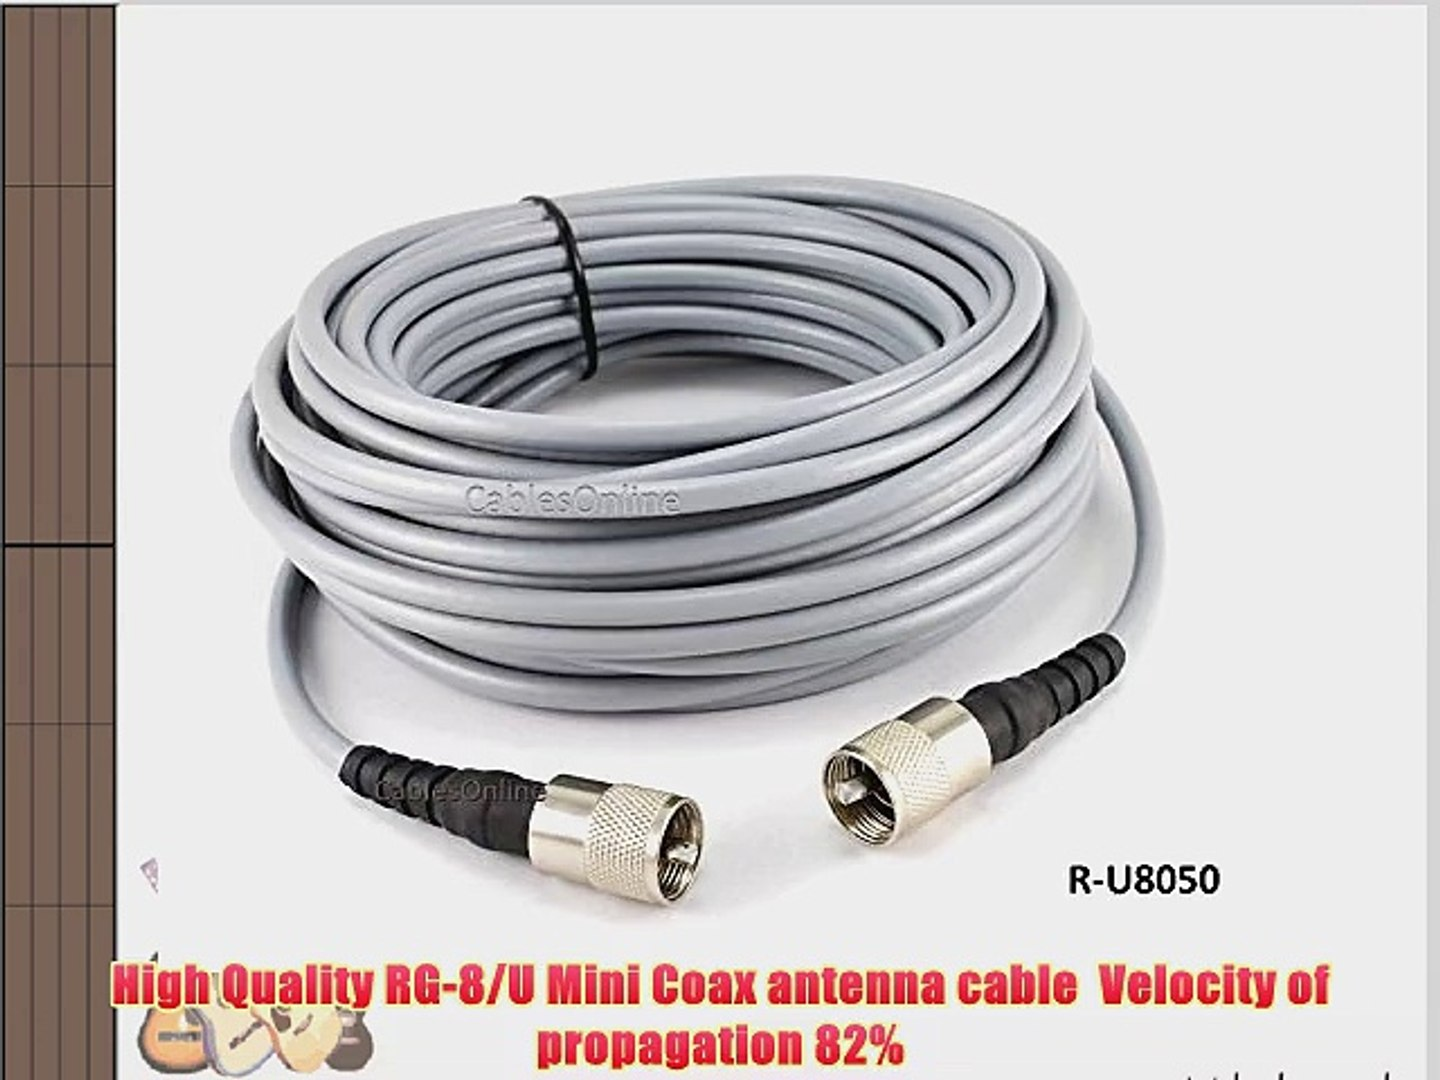 CablesOnline R-U025 PL259 25ft RG8x Coax UHF Male to Male Antenna Cable